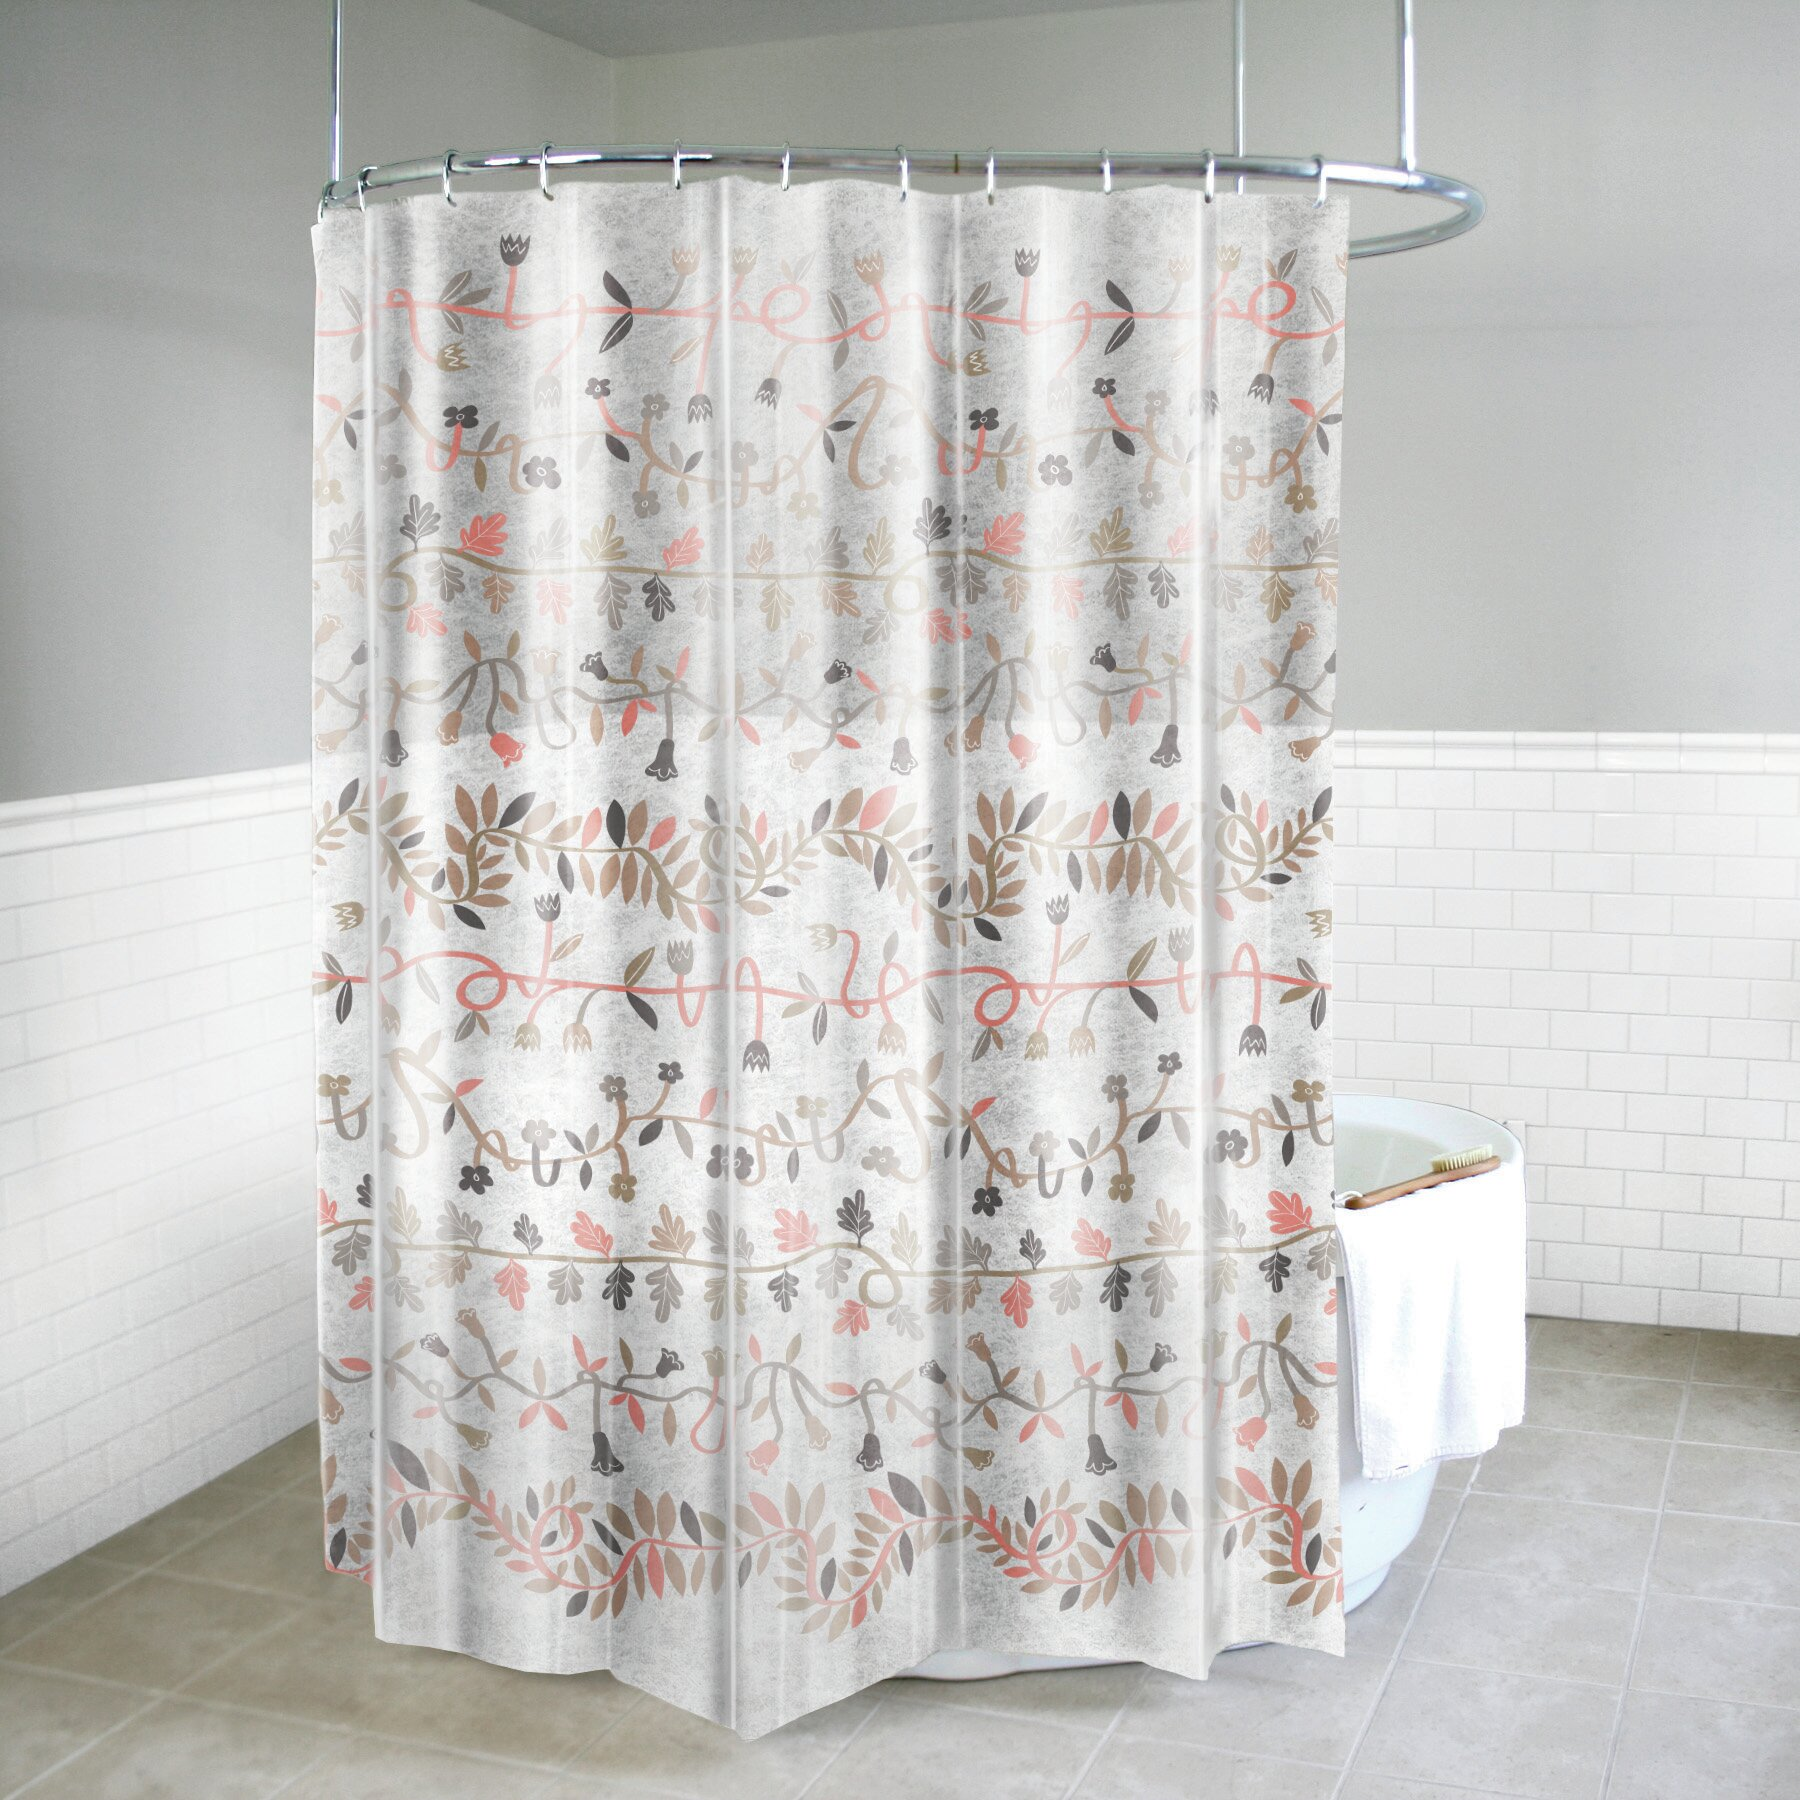 Details About Winston Porter Maskell Peva 5g Ivy Vinyl Single Shower Curtain Liner